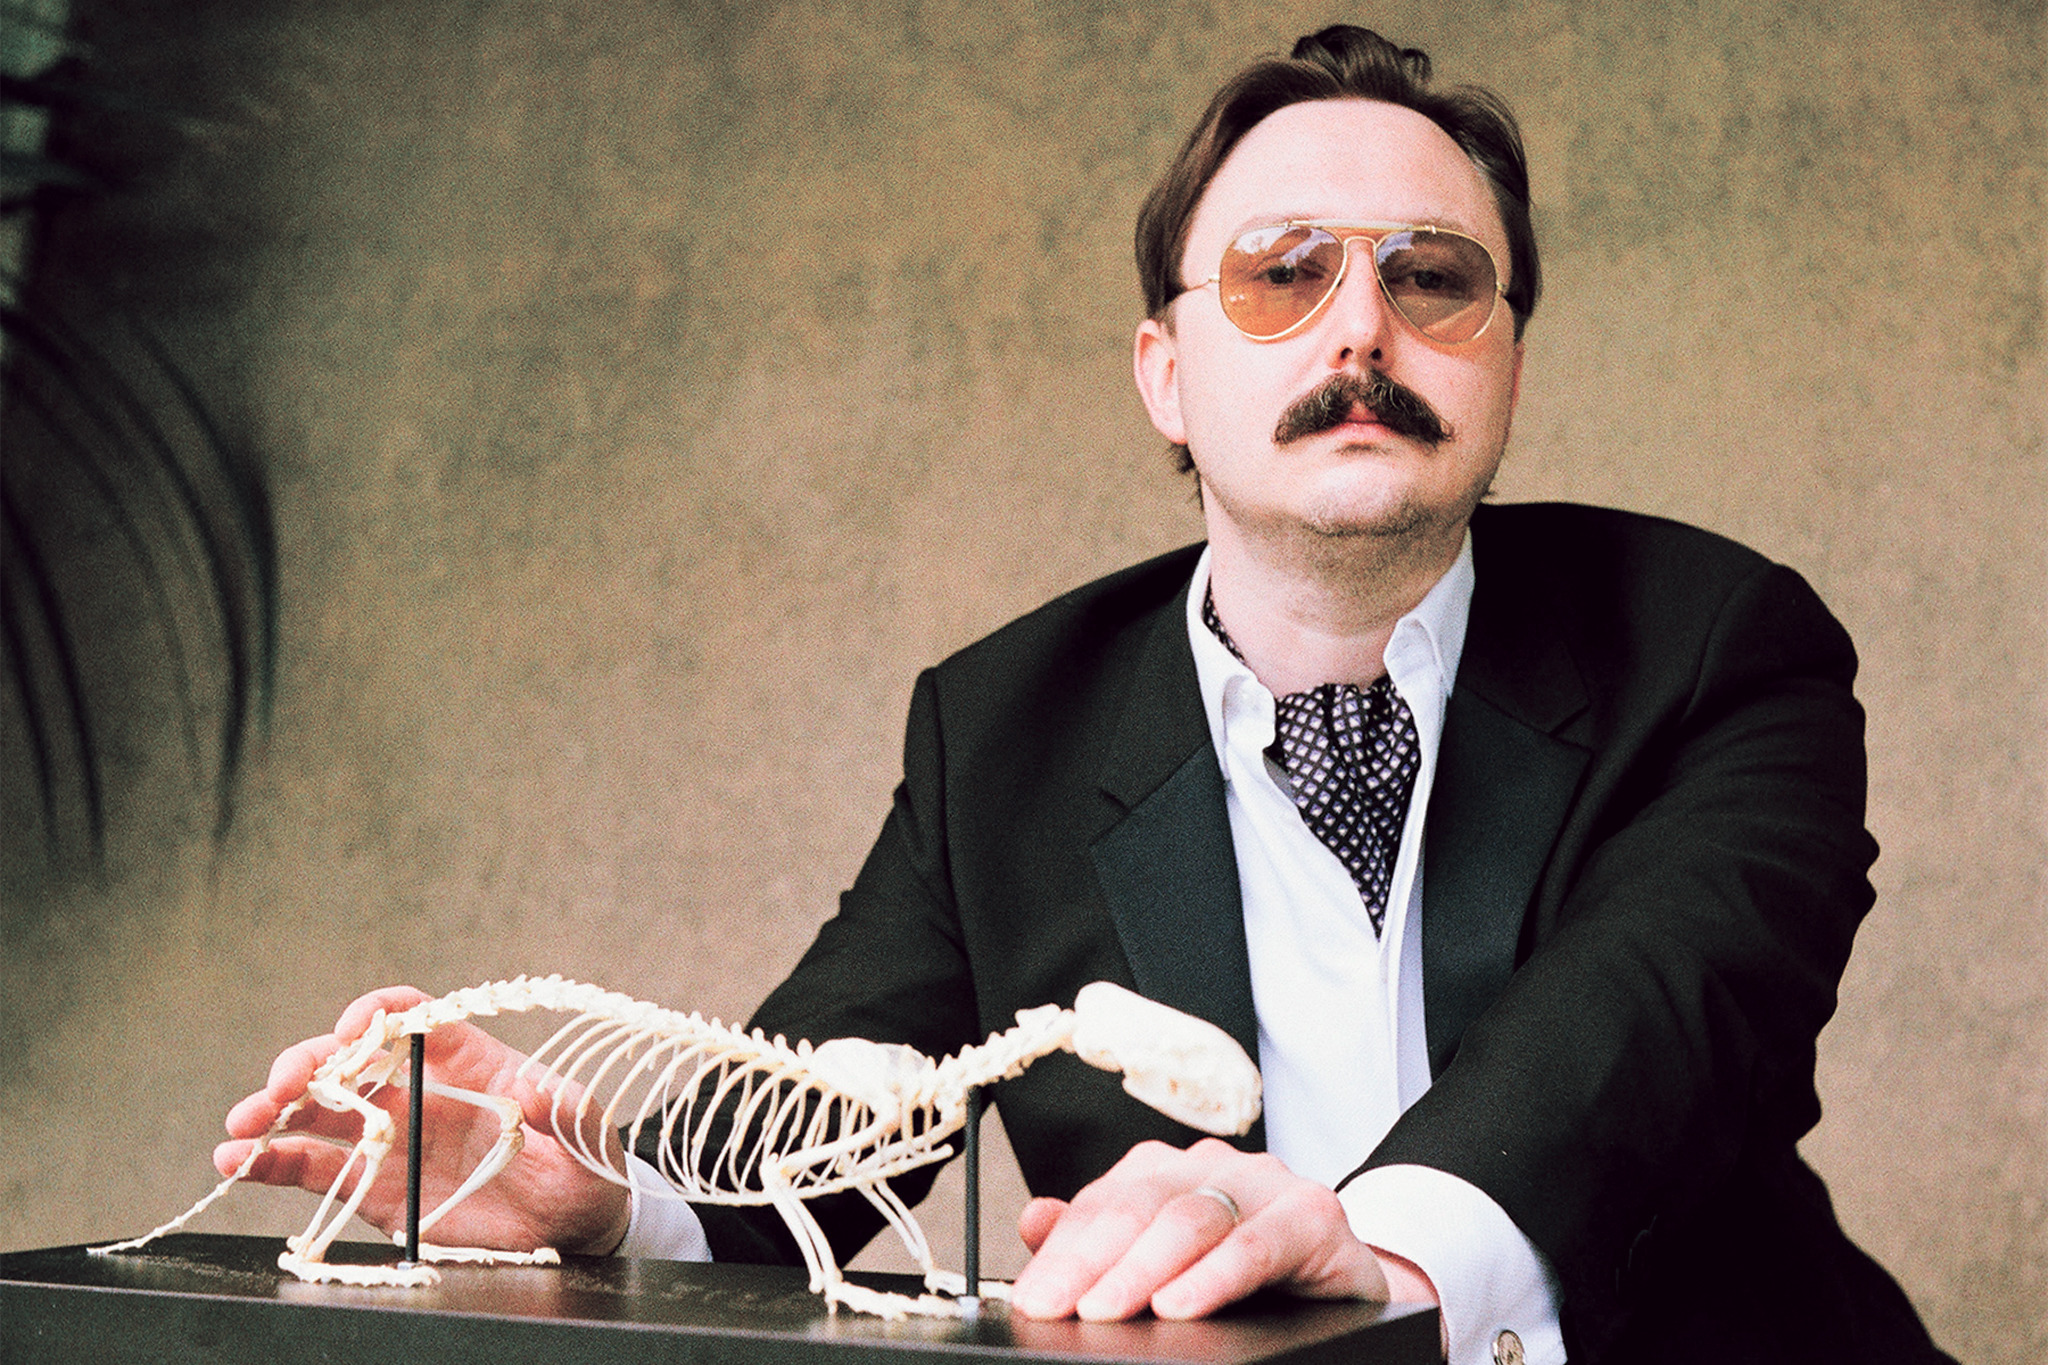 John Hodgman performing in John Hodgman: I Stole Your Dad, running January 10-18 at The Public Theater at Astor Place as part of the 10th Anniversary Under the Radar Festival.